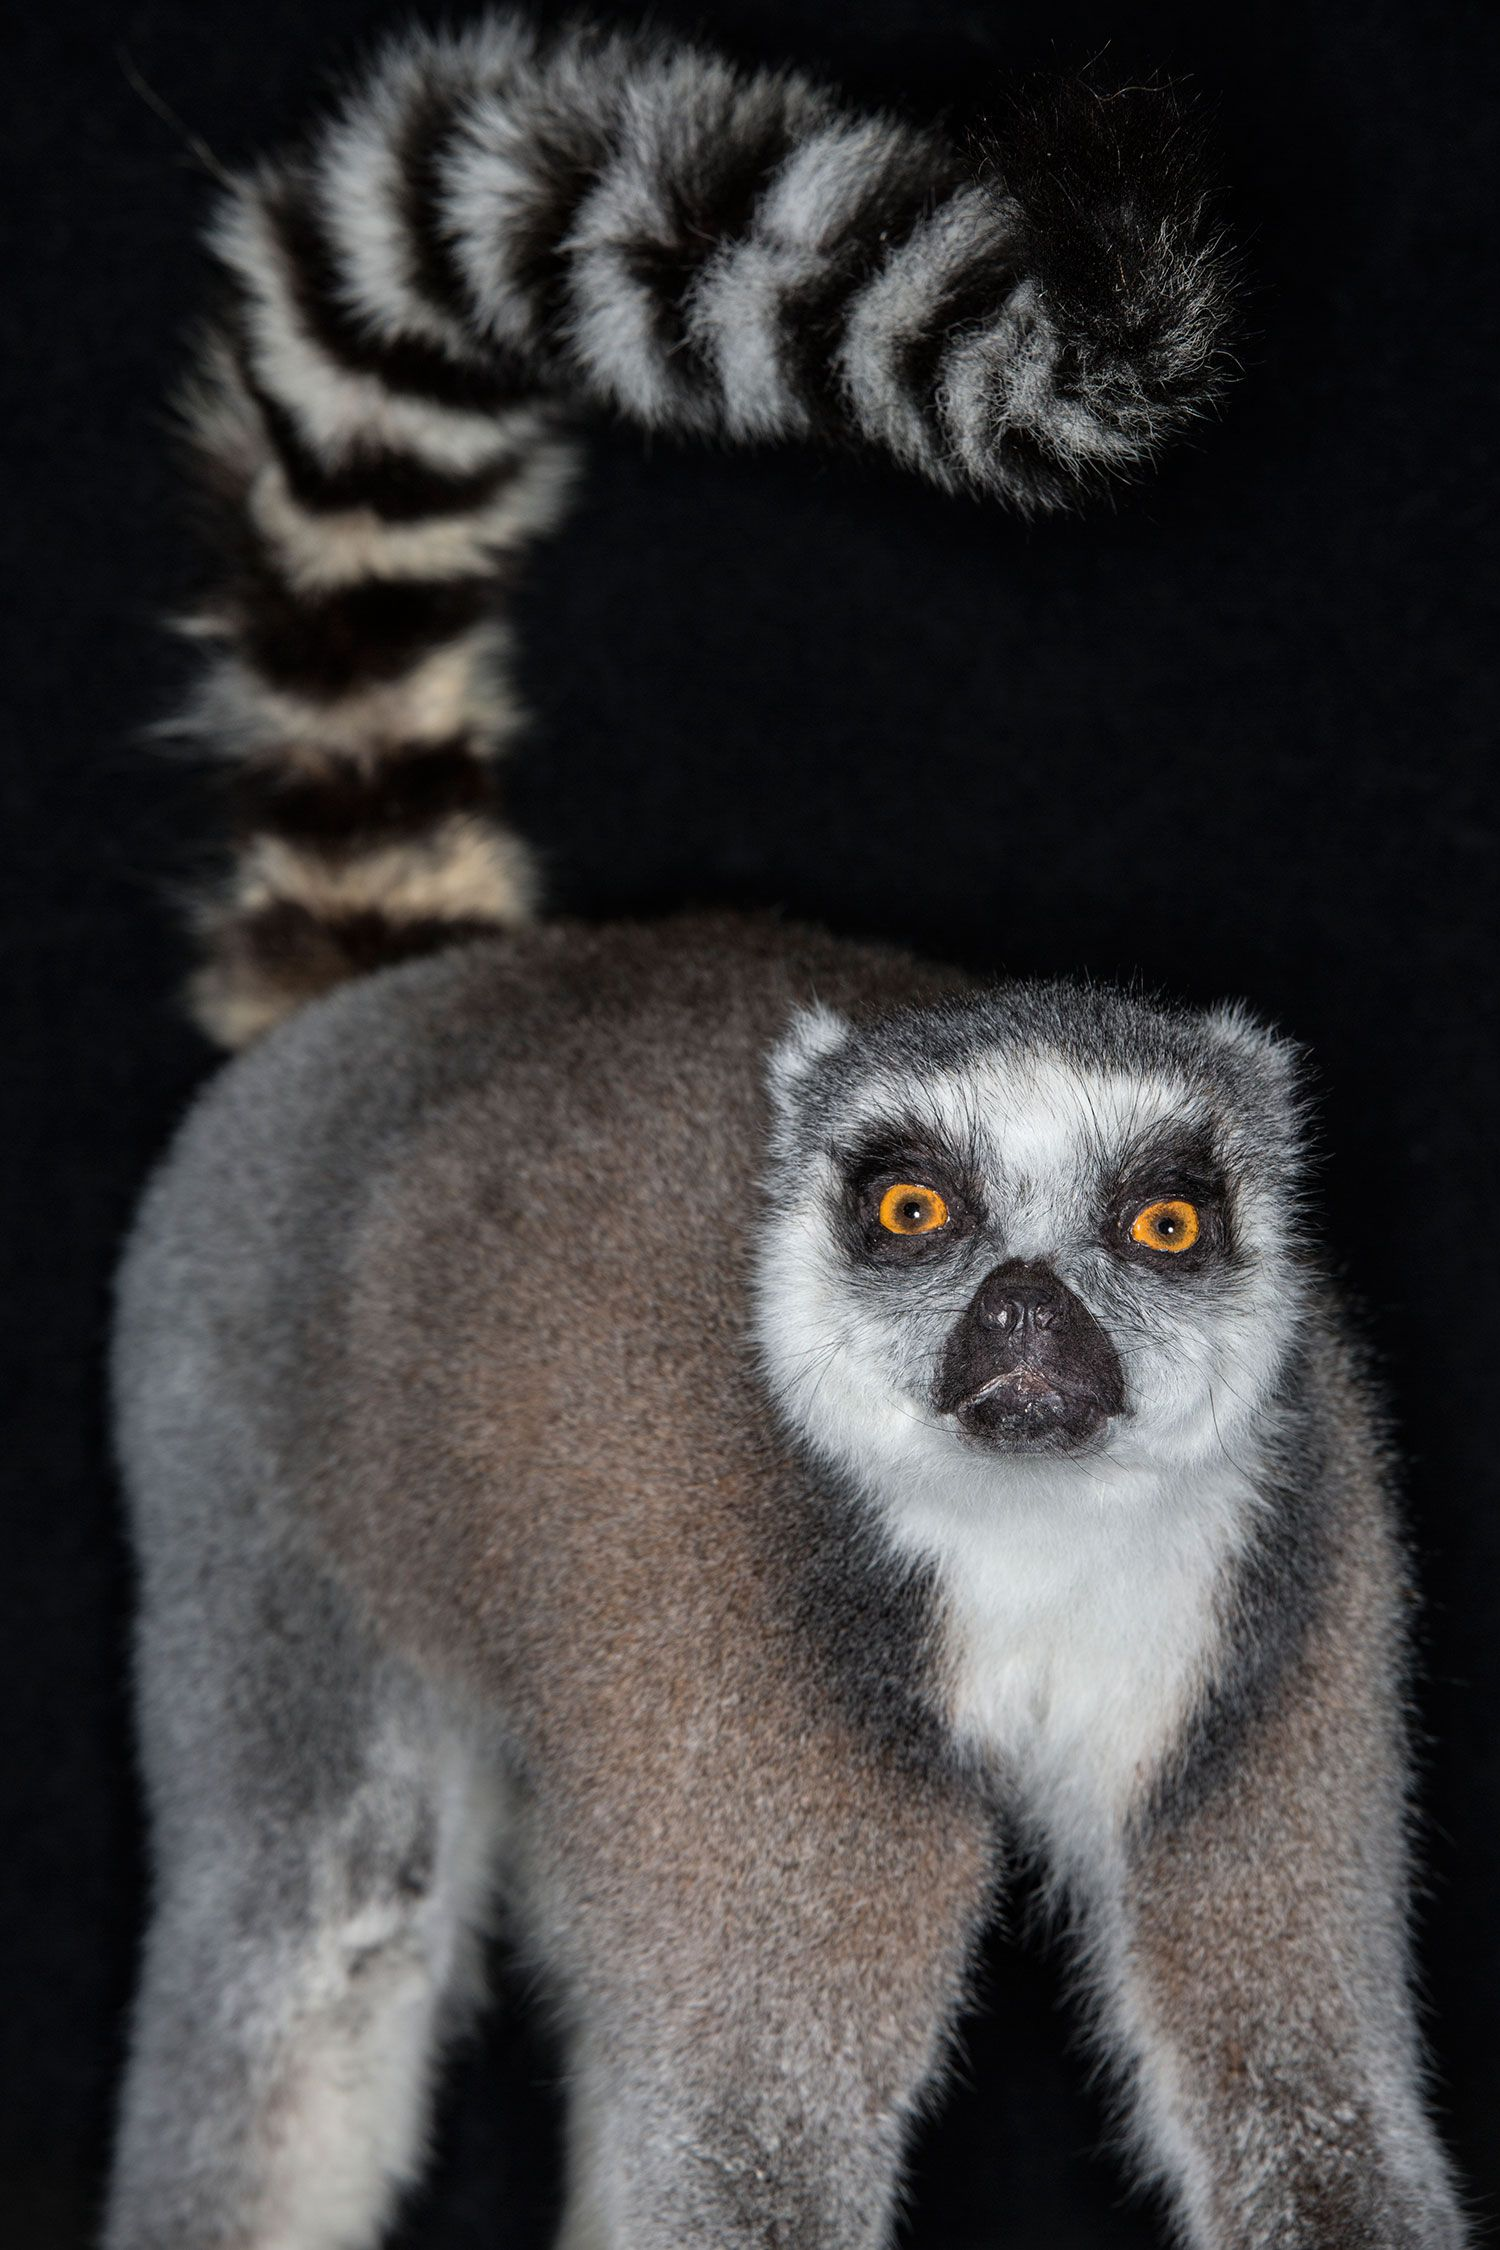 4c0a0cab0a5 Did you know lemurs are only found on the African island of Madagascar and  some tiny islands nearby